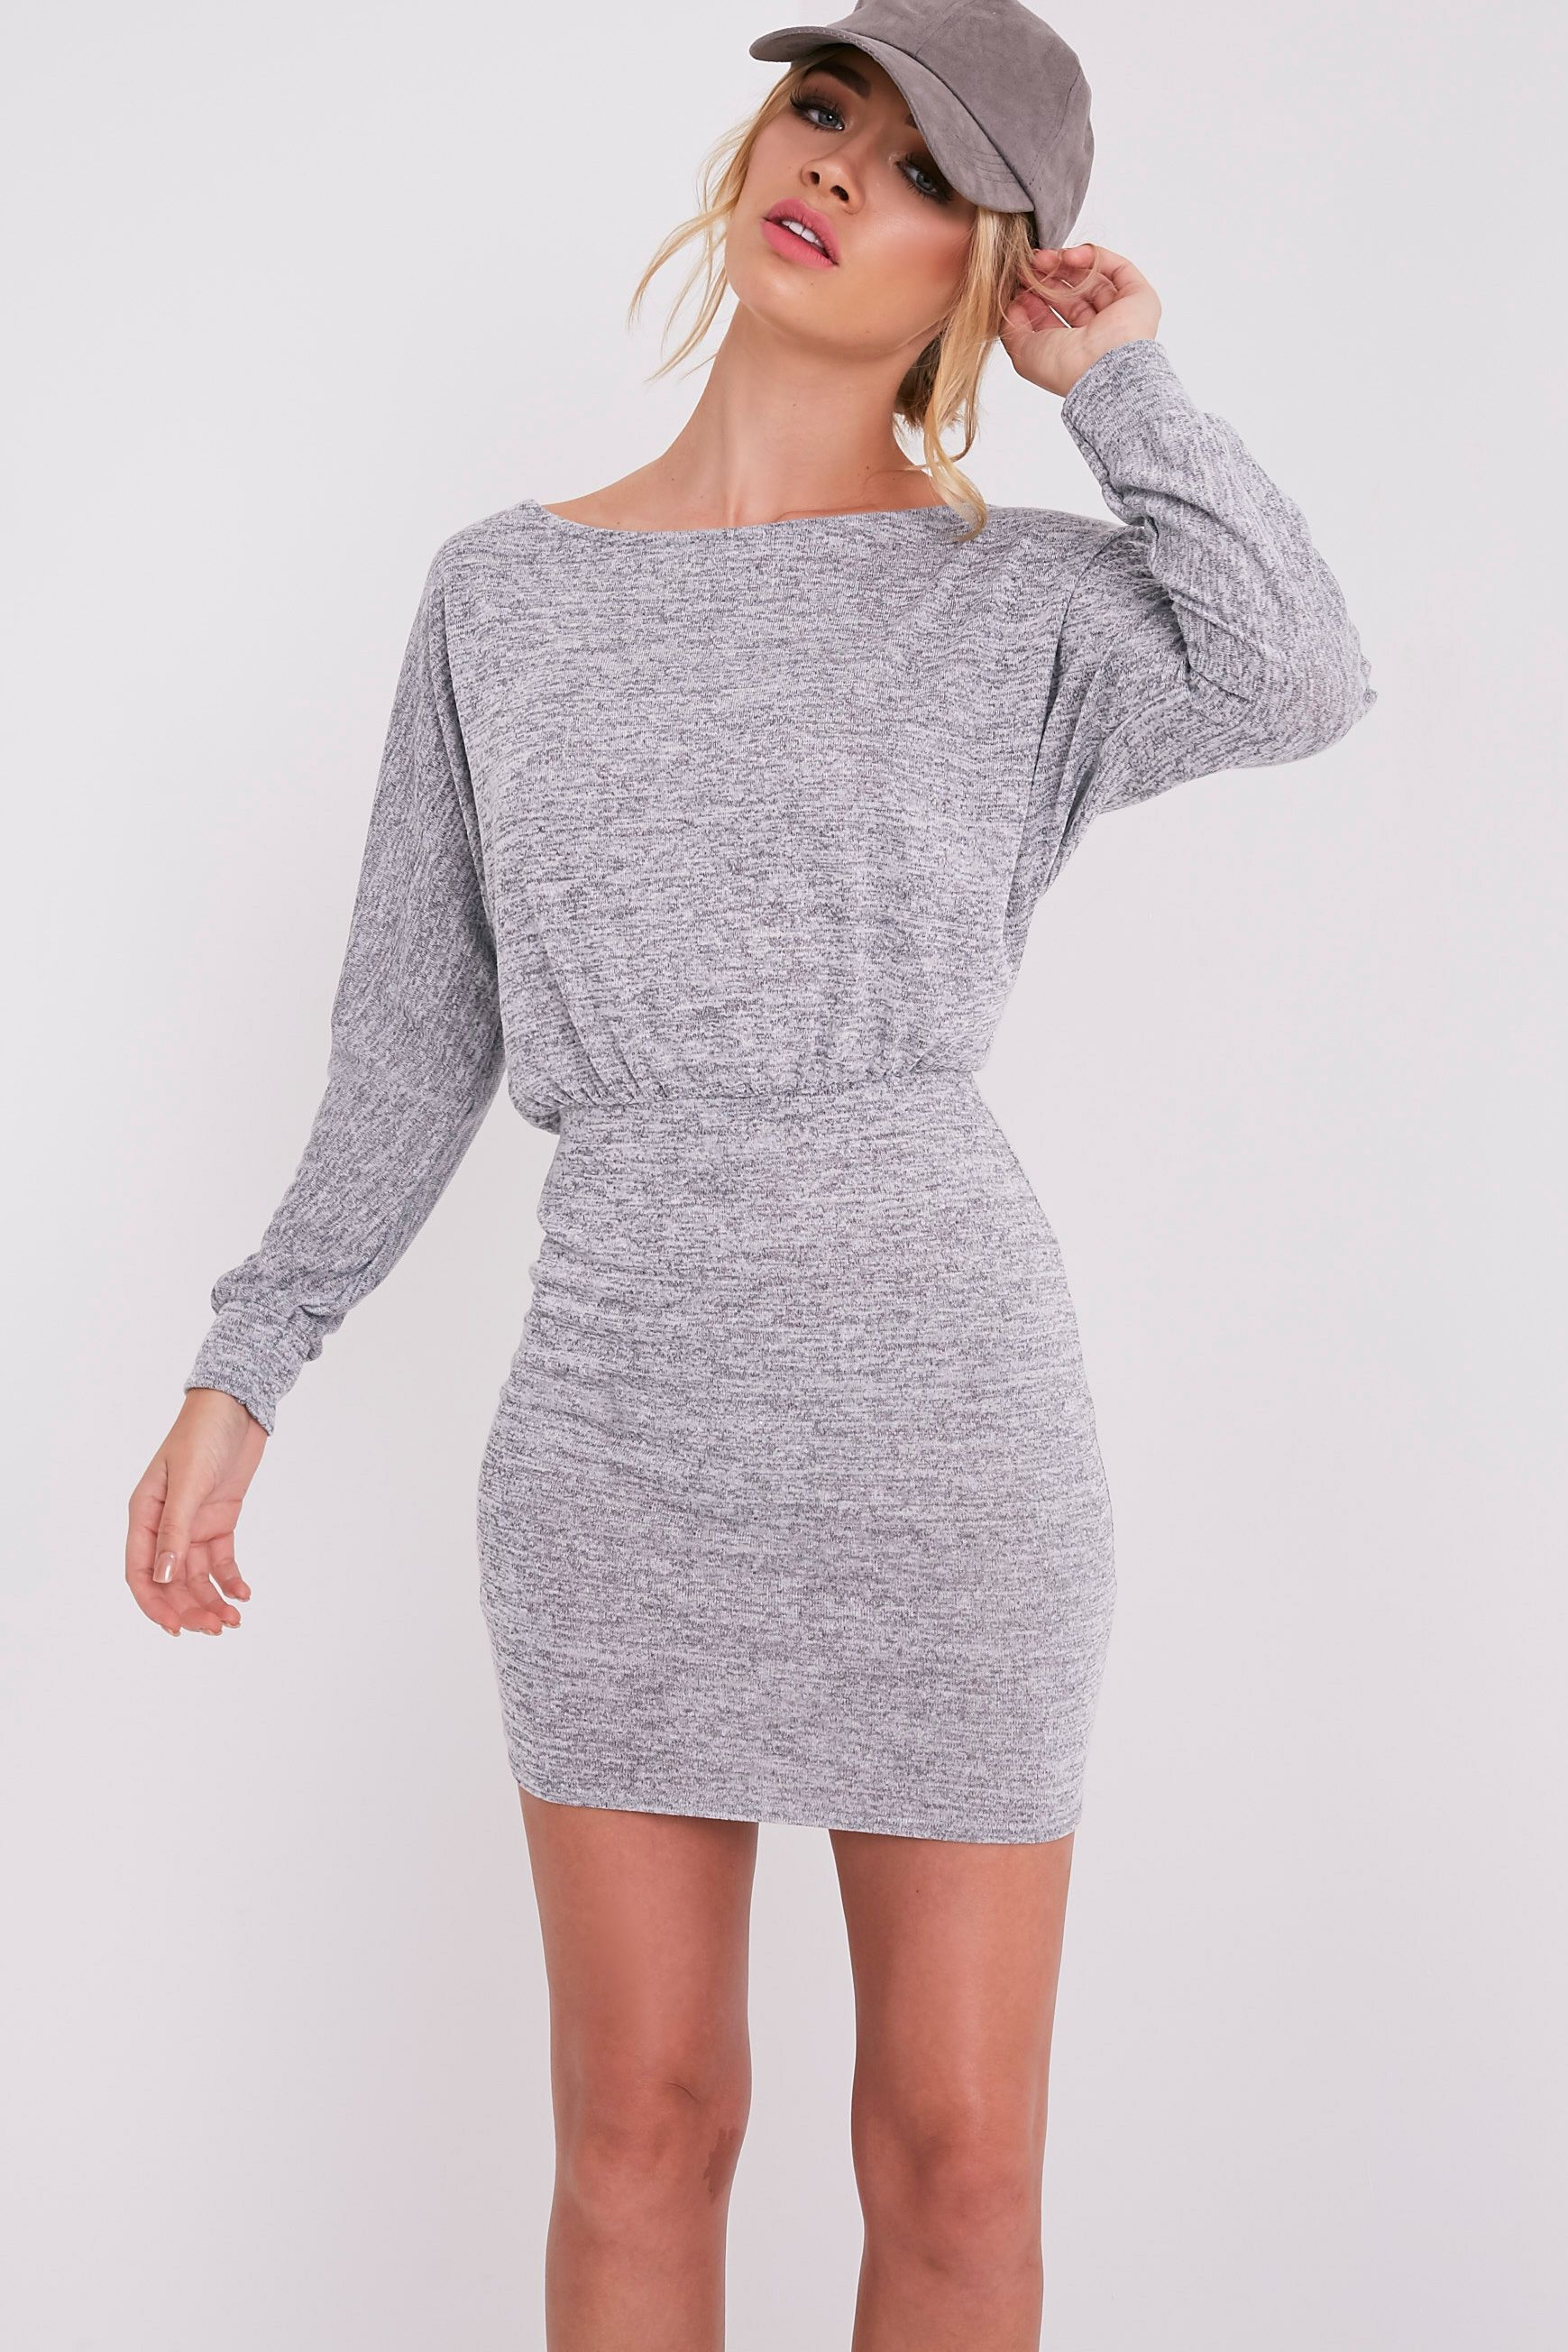 Lerie Grey Waist Fitted Knit Dress 5